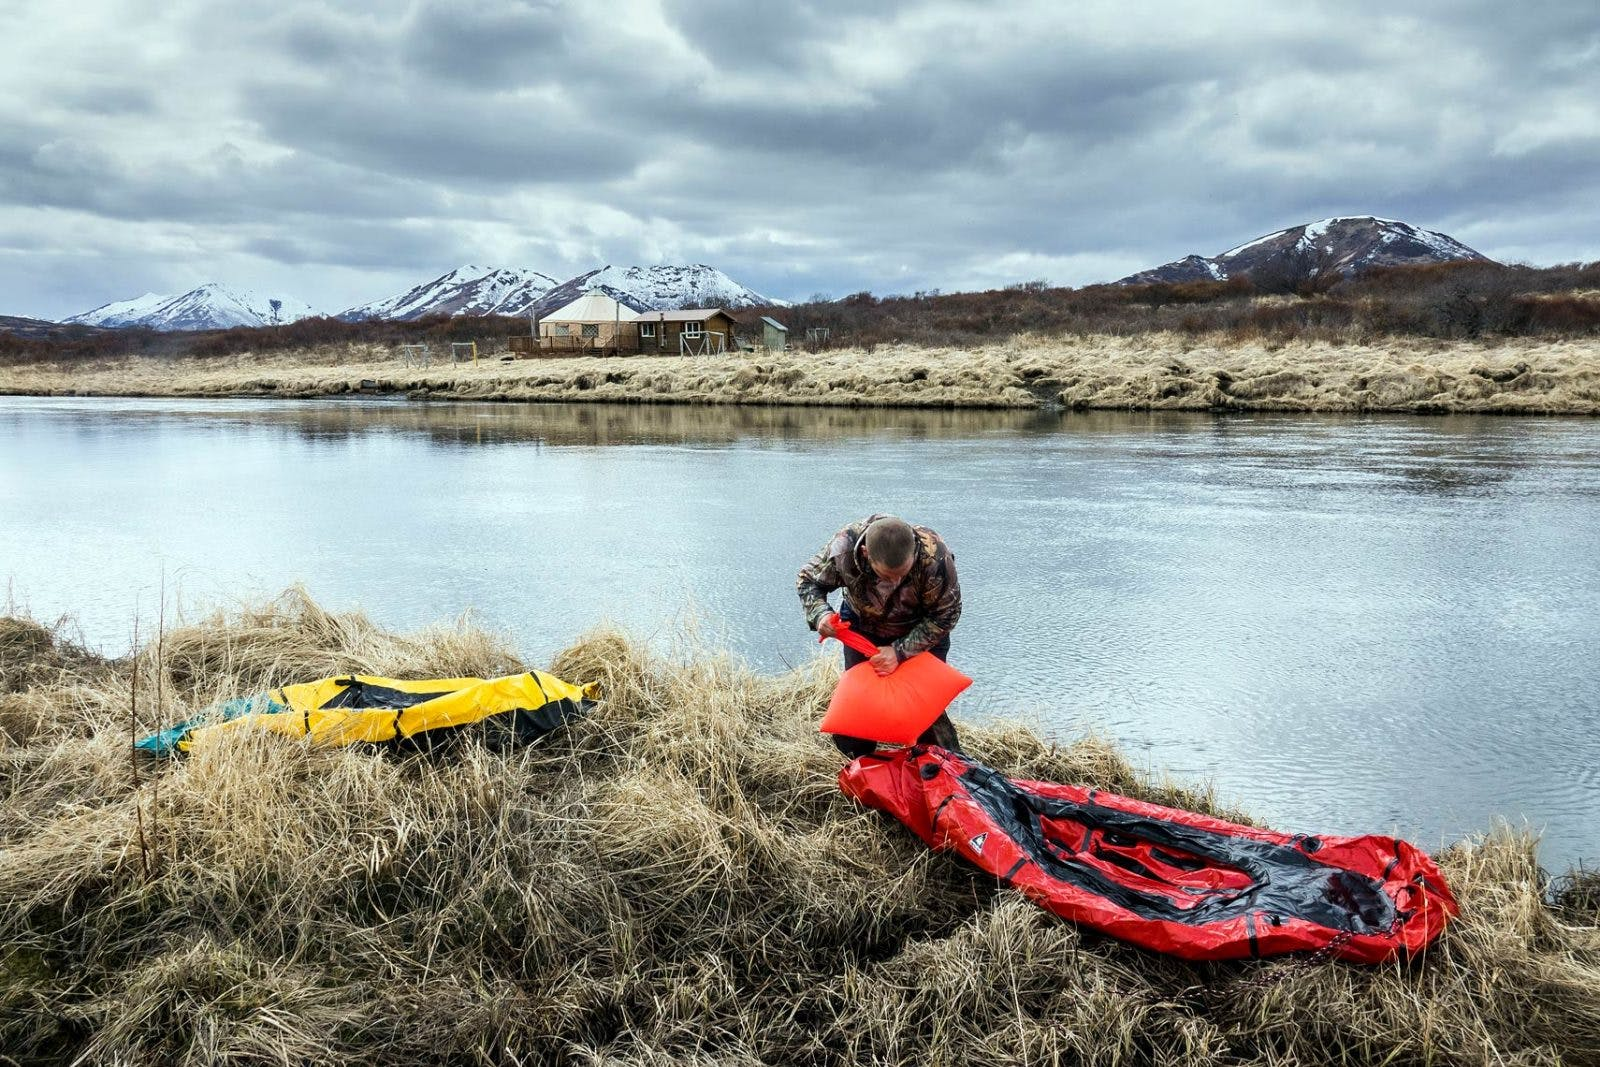 Bjorn Dihle inflates his packraft at the edge of the Karluk River, after hiking from Larsen Bay to the midpoint of the river; which also served as the take out point on the 130-mile loop.